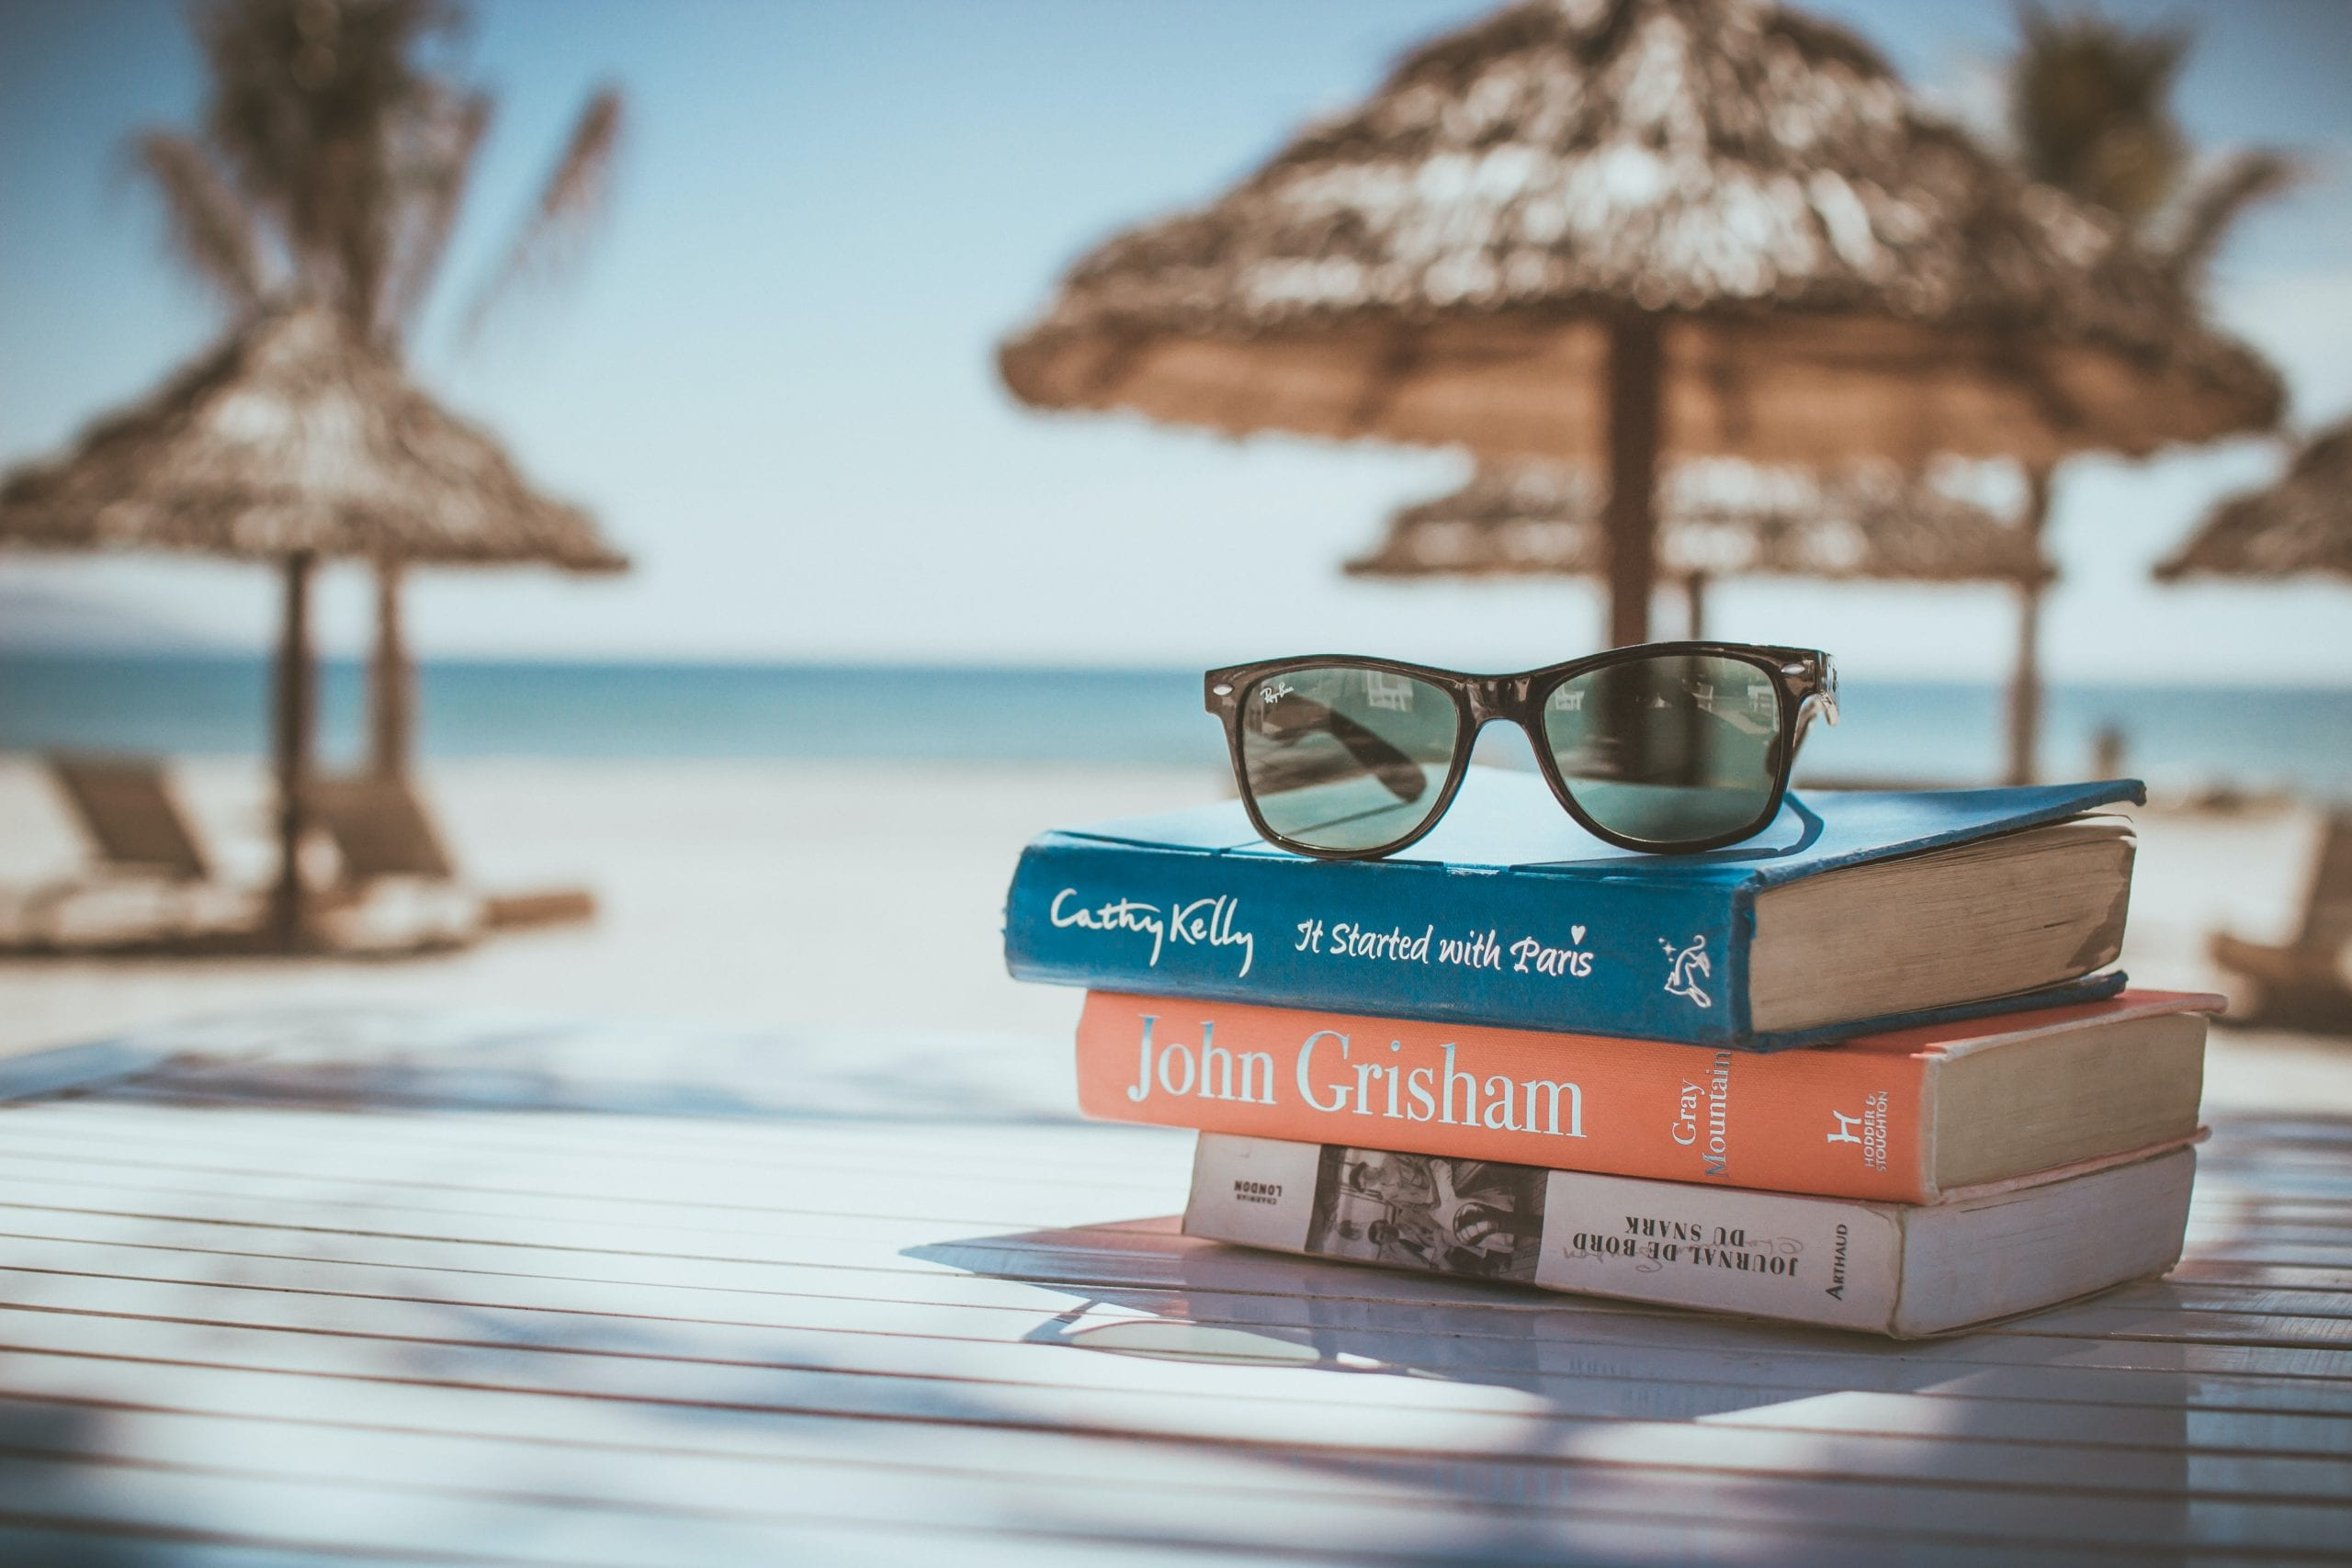 Summer Books (Photo by Link Hoang on Unsplash)